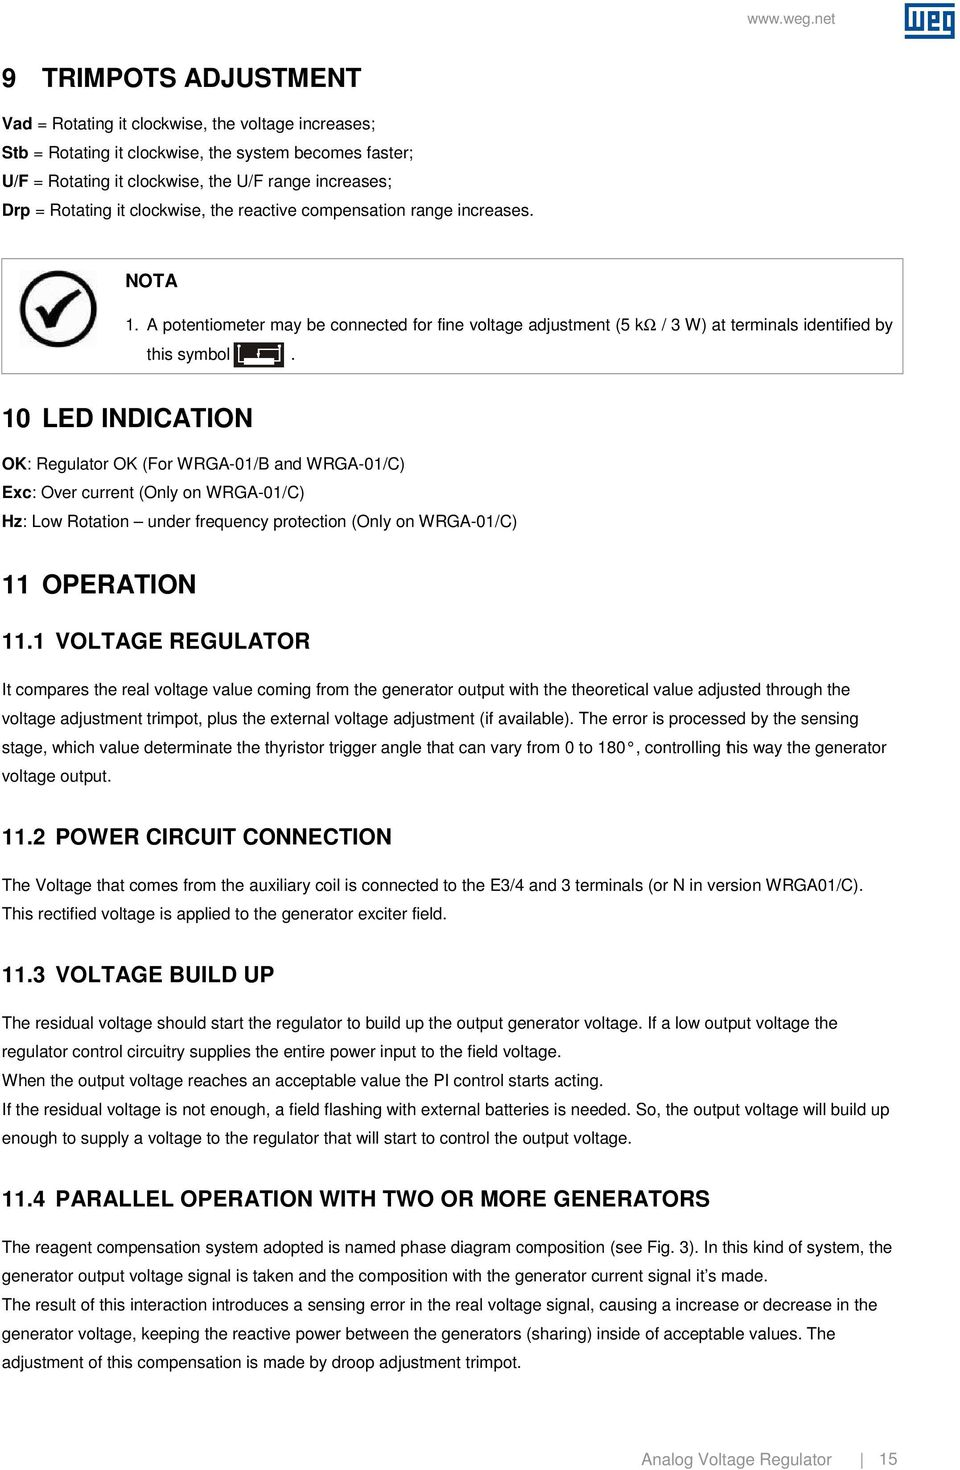 10 LED INDICATION OK: Regulator OK (For WRGA-01/B and WRGA-01/C) Exc: Over current (Only on WRGA-01/C) Hz: Low Rotation under frequency protection (Only on WRGA-01/C) 11 OPERATION 11.